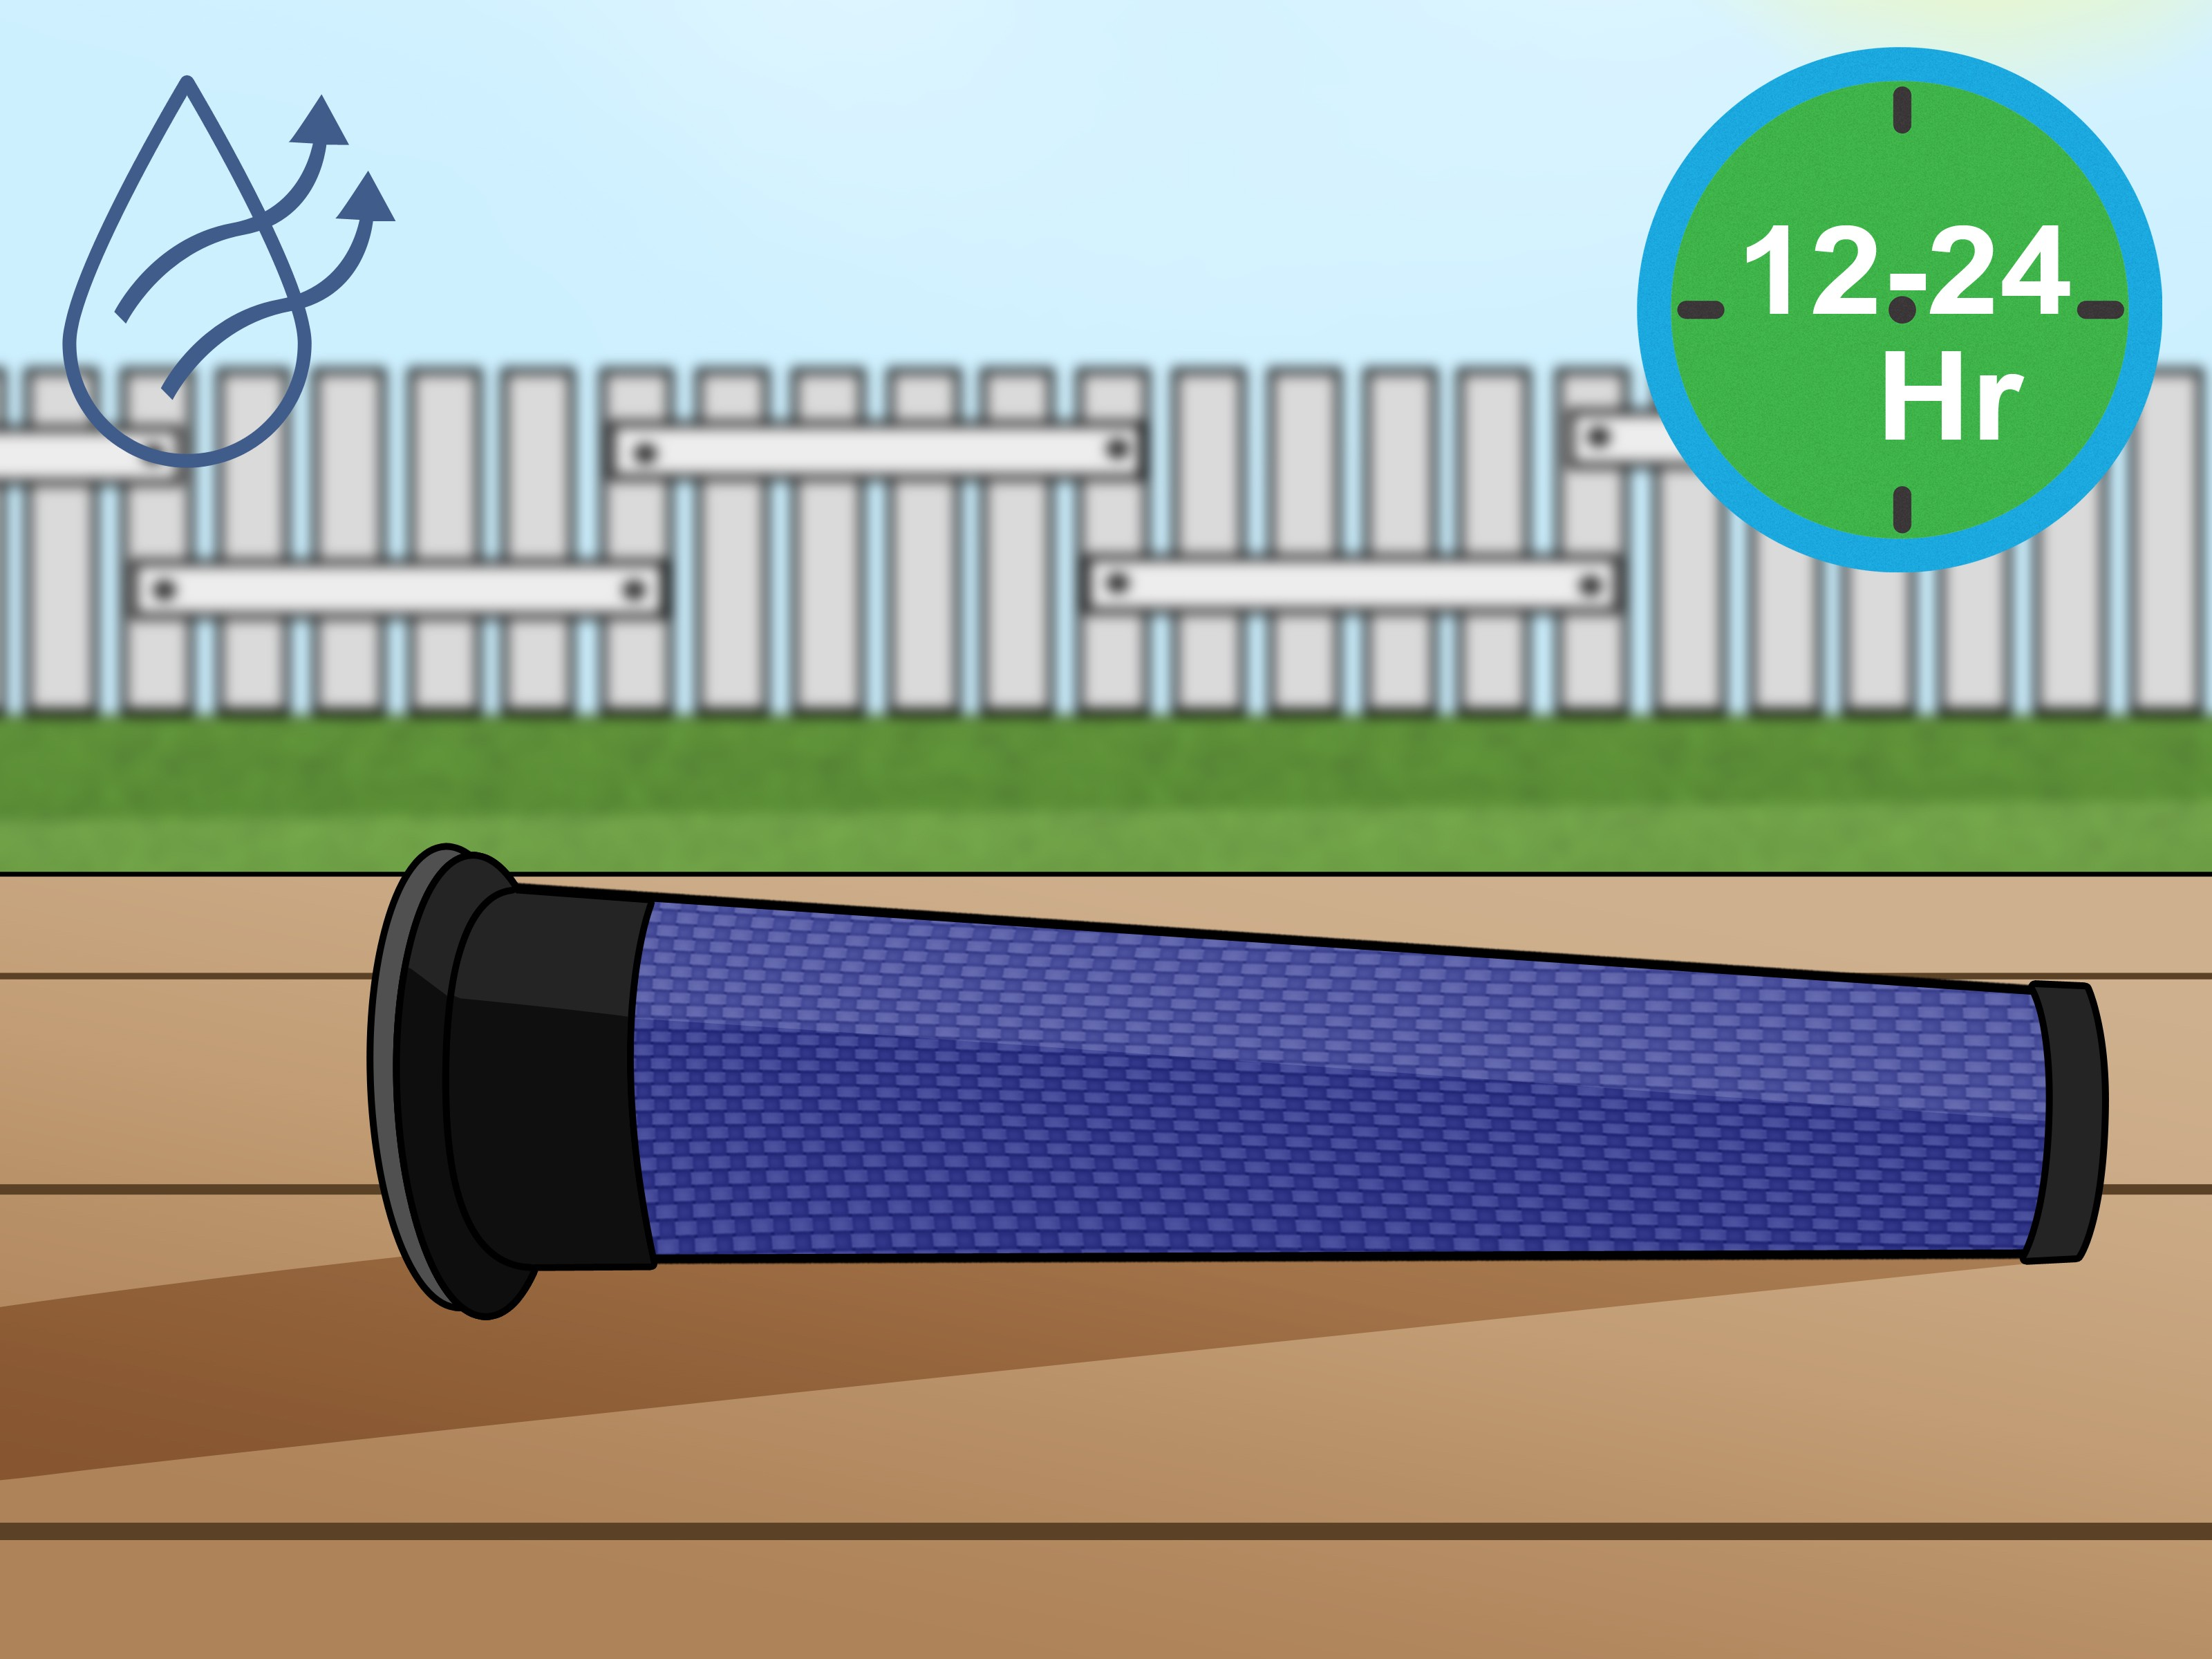 Dyson Dc35 Parts Diagram How to Clean A Dyson Filter 10 Steps with Wikihow Of Dyson Dc35 Parts Diagram